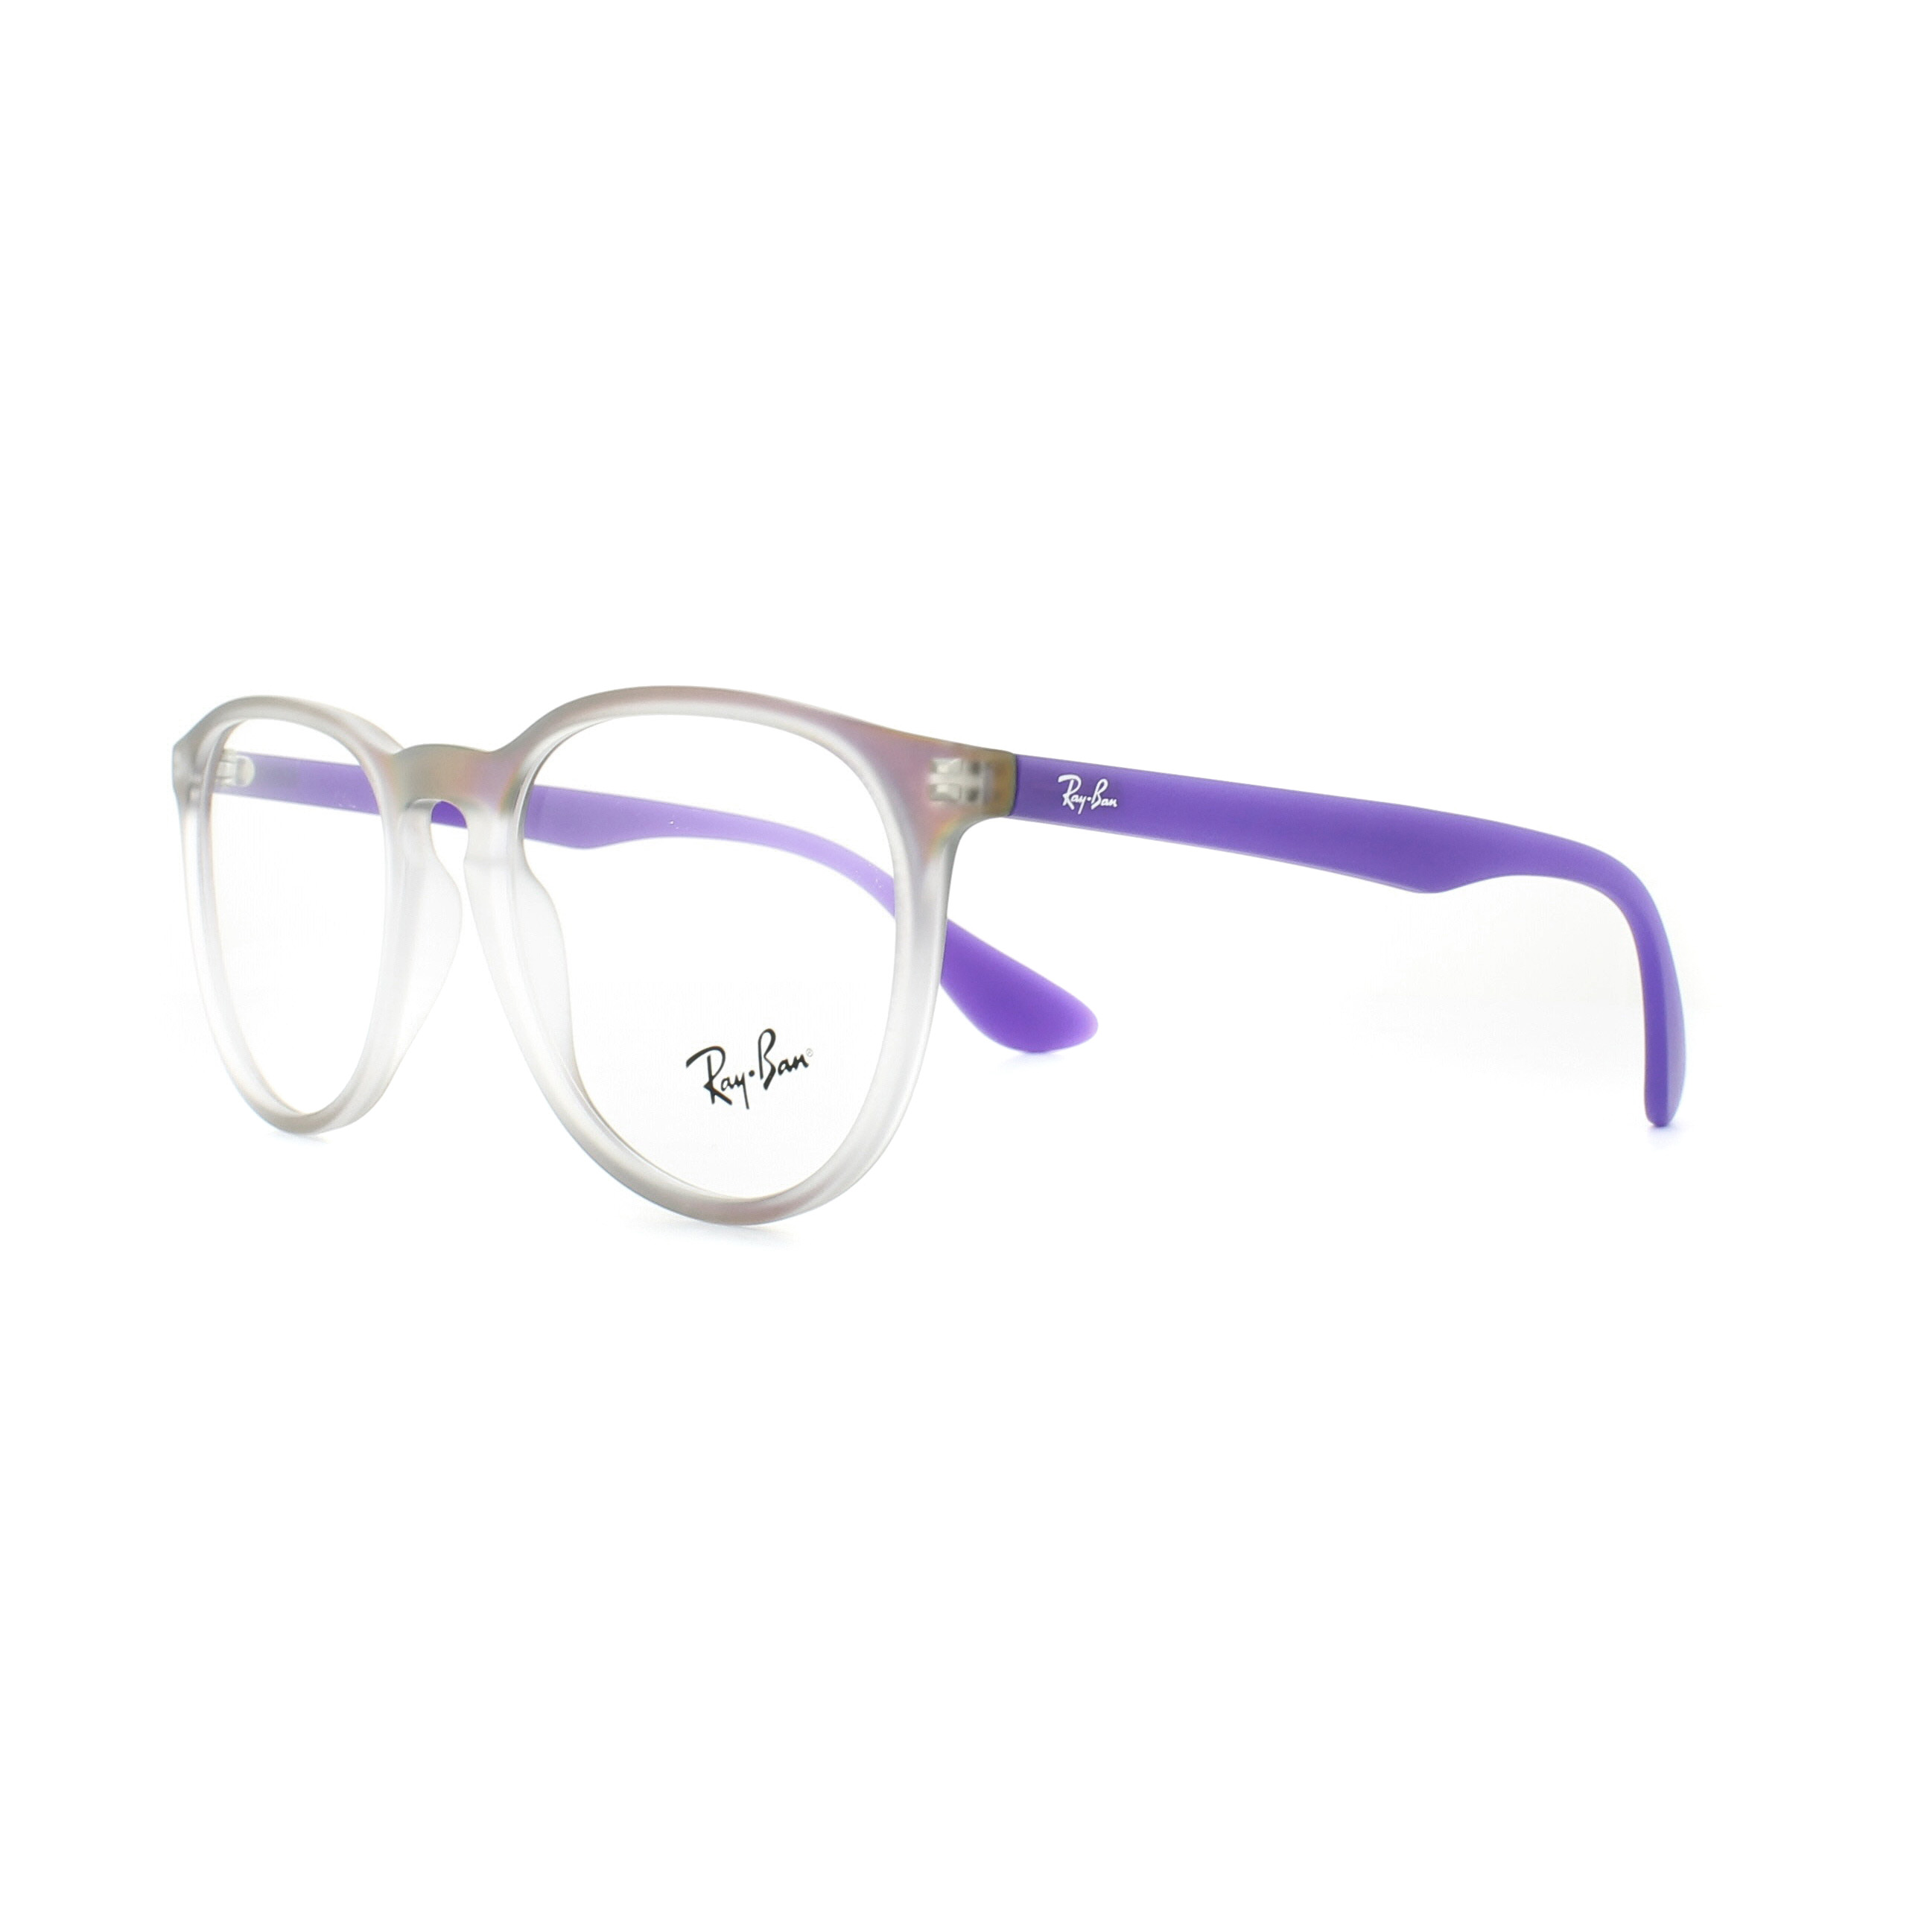 7e778d21f8 Sentinel Ray-Ban Glasses Frames 7046 Erika 5600 Violet Fade Rubber 51mm  Womens